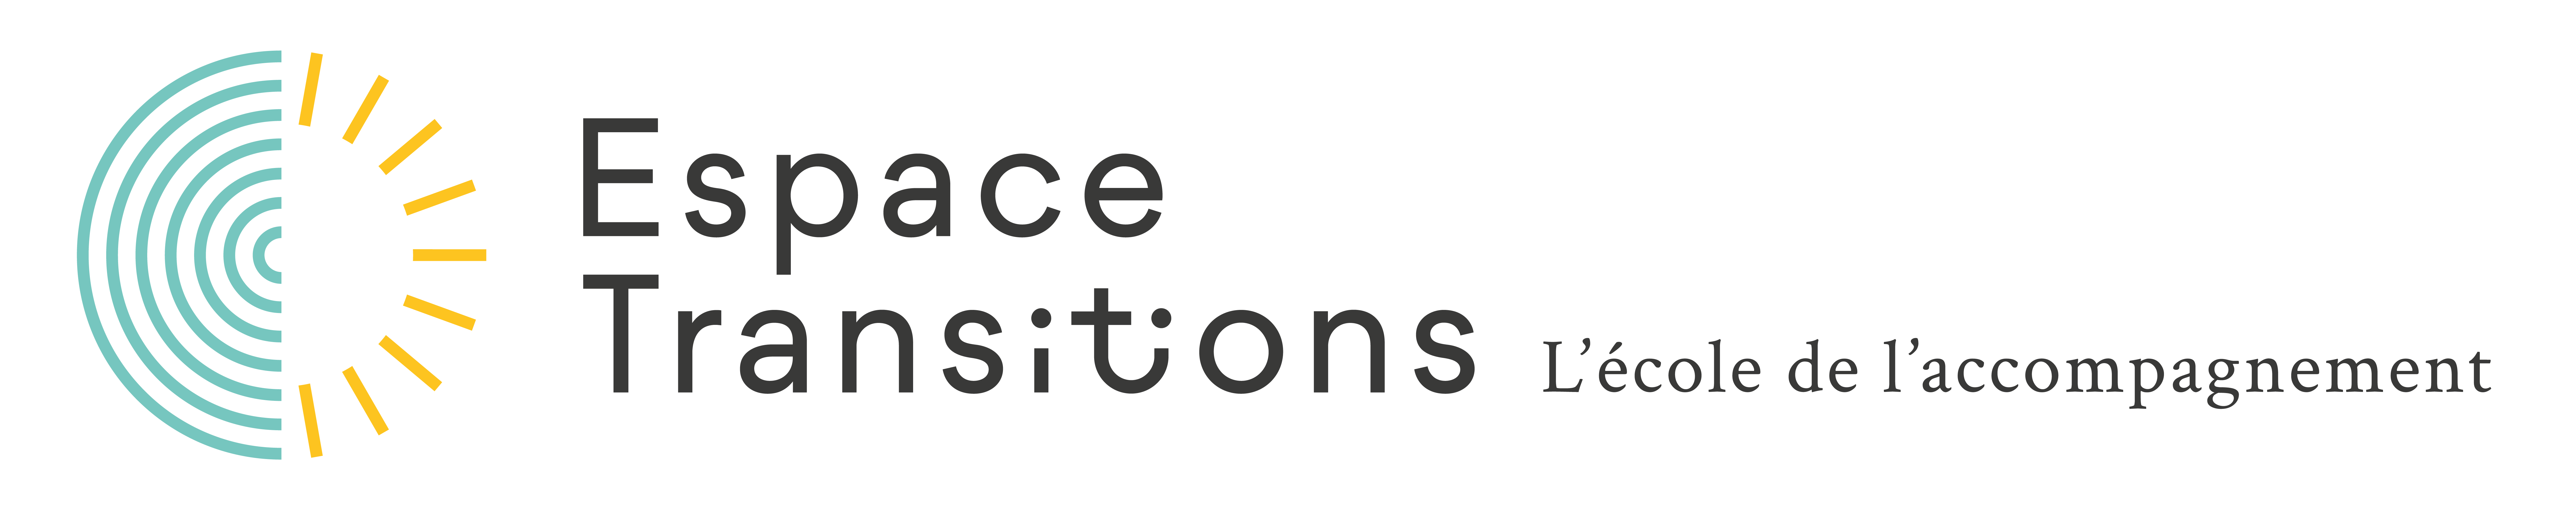 Espace Transitions